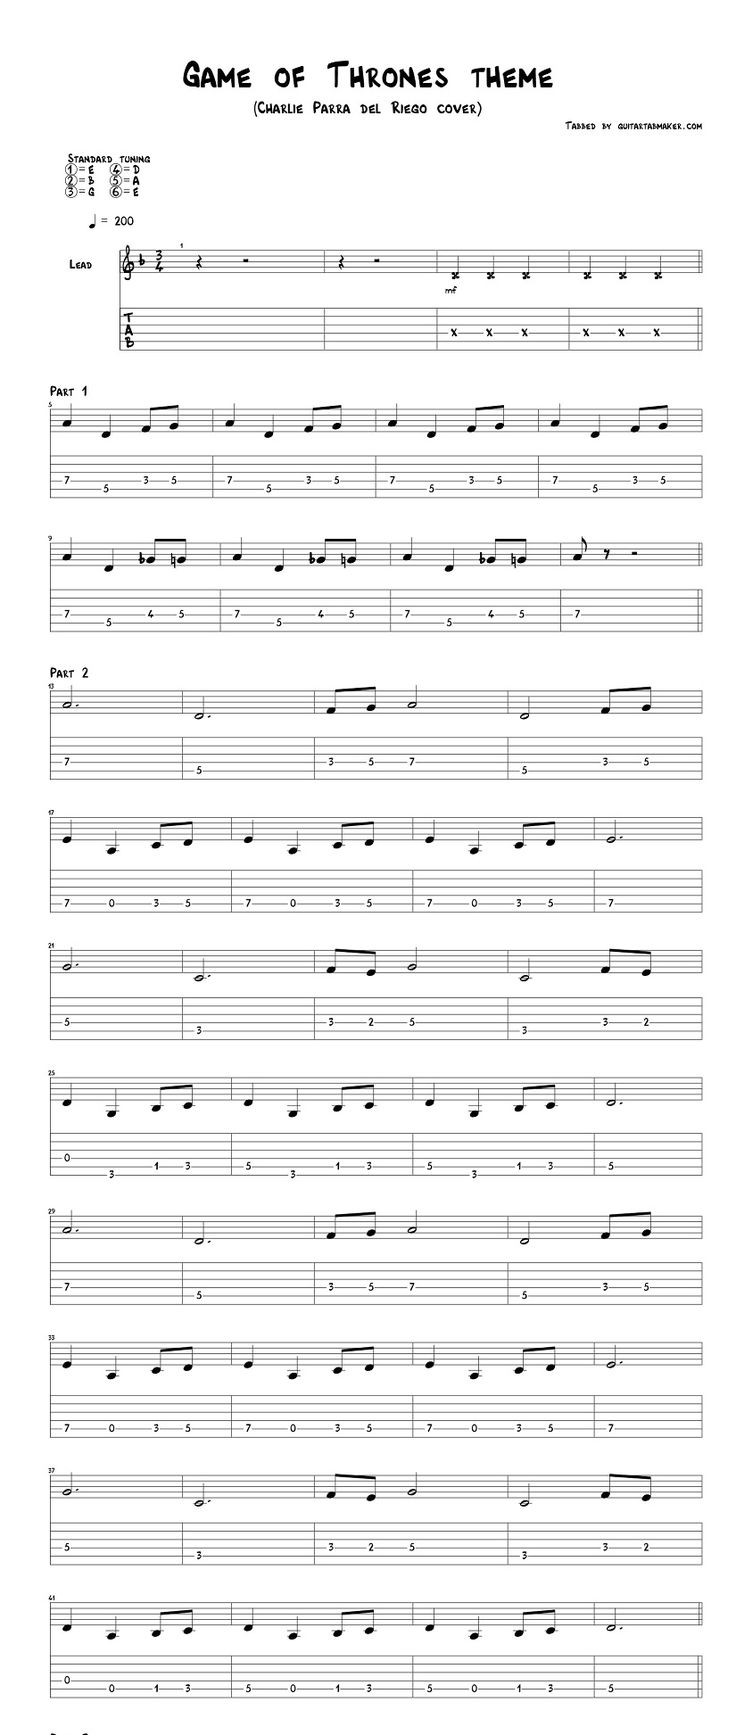 Best 25 guitar tabs ideas on pinterest guitar chords guitar game of thrones theme song guitar tab acoustic guitar cover by charlie parra del riego hexwebz Images